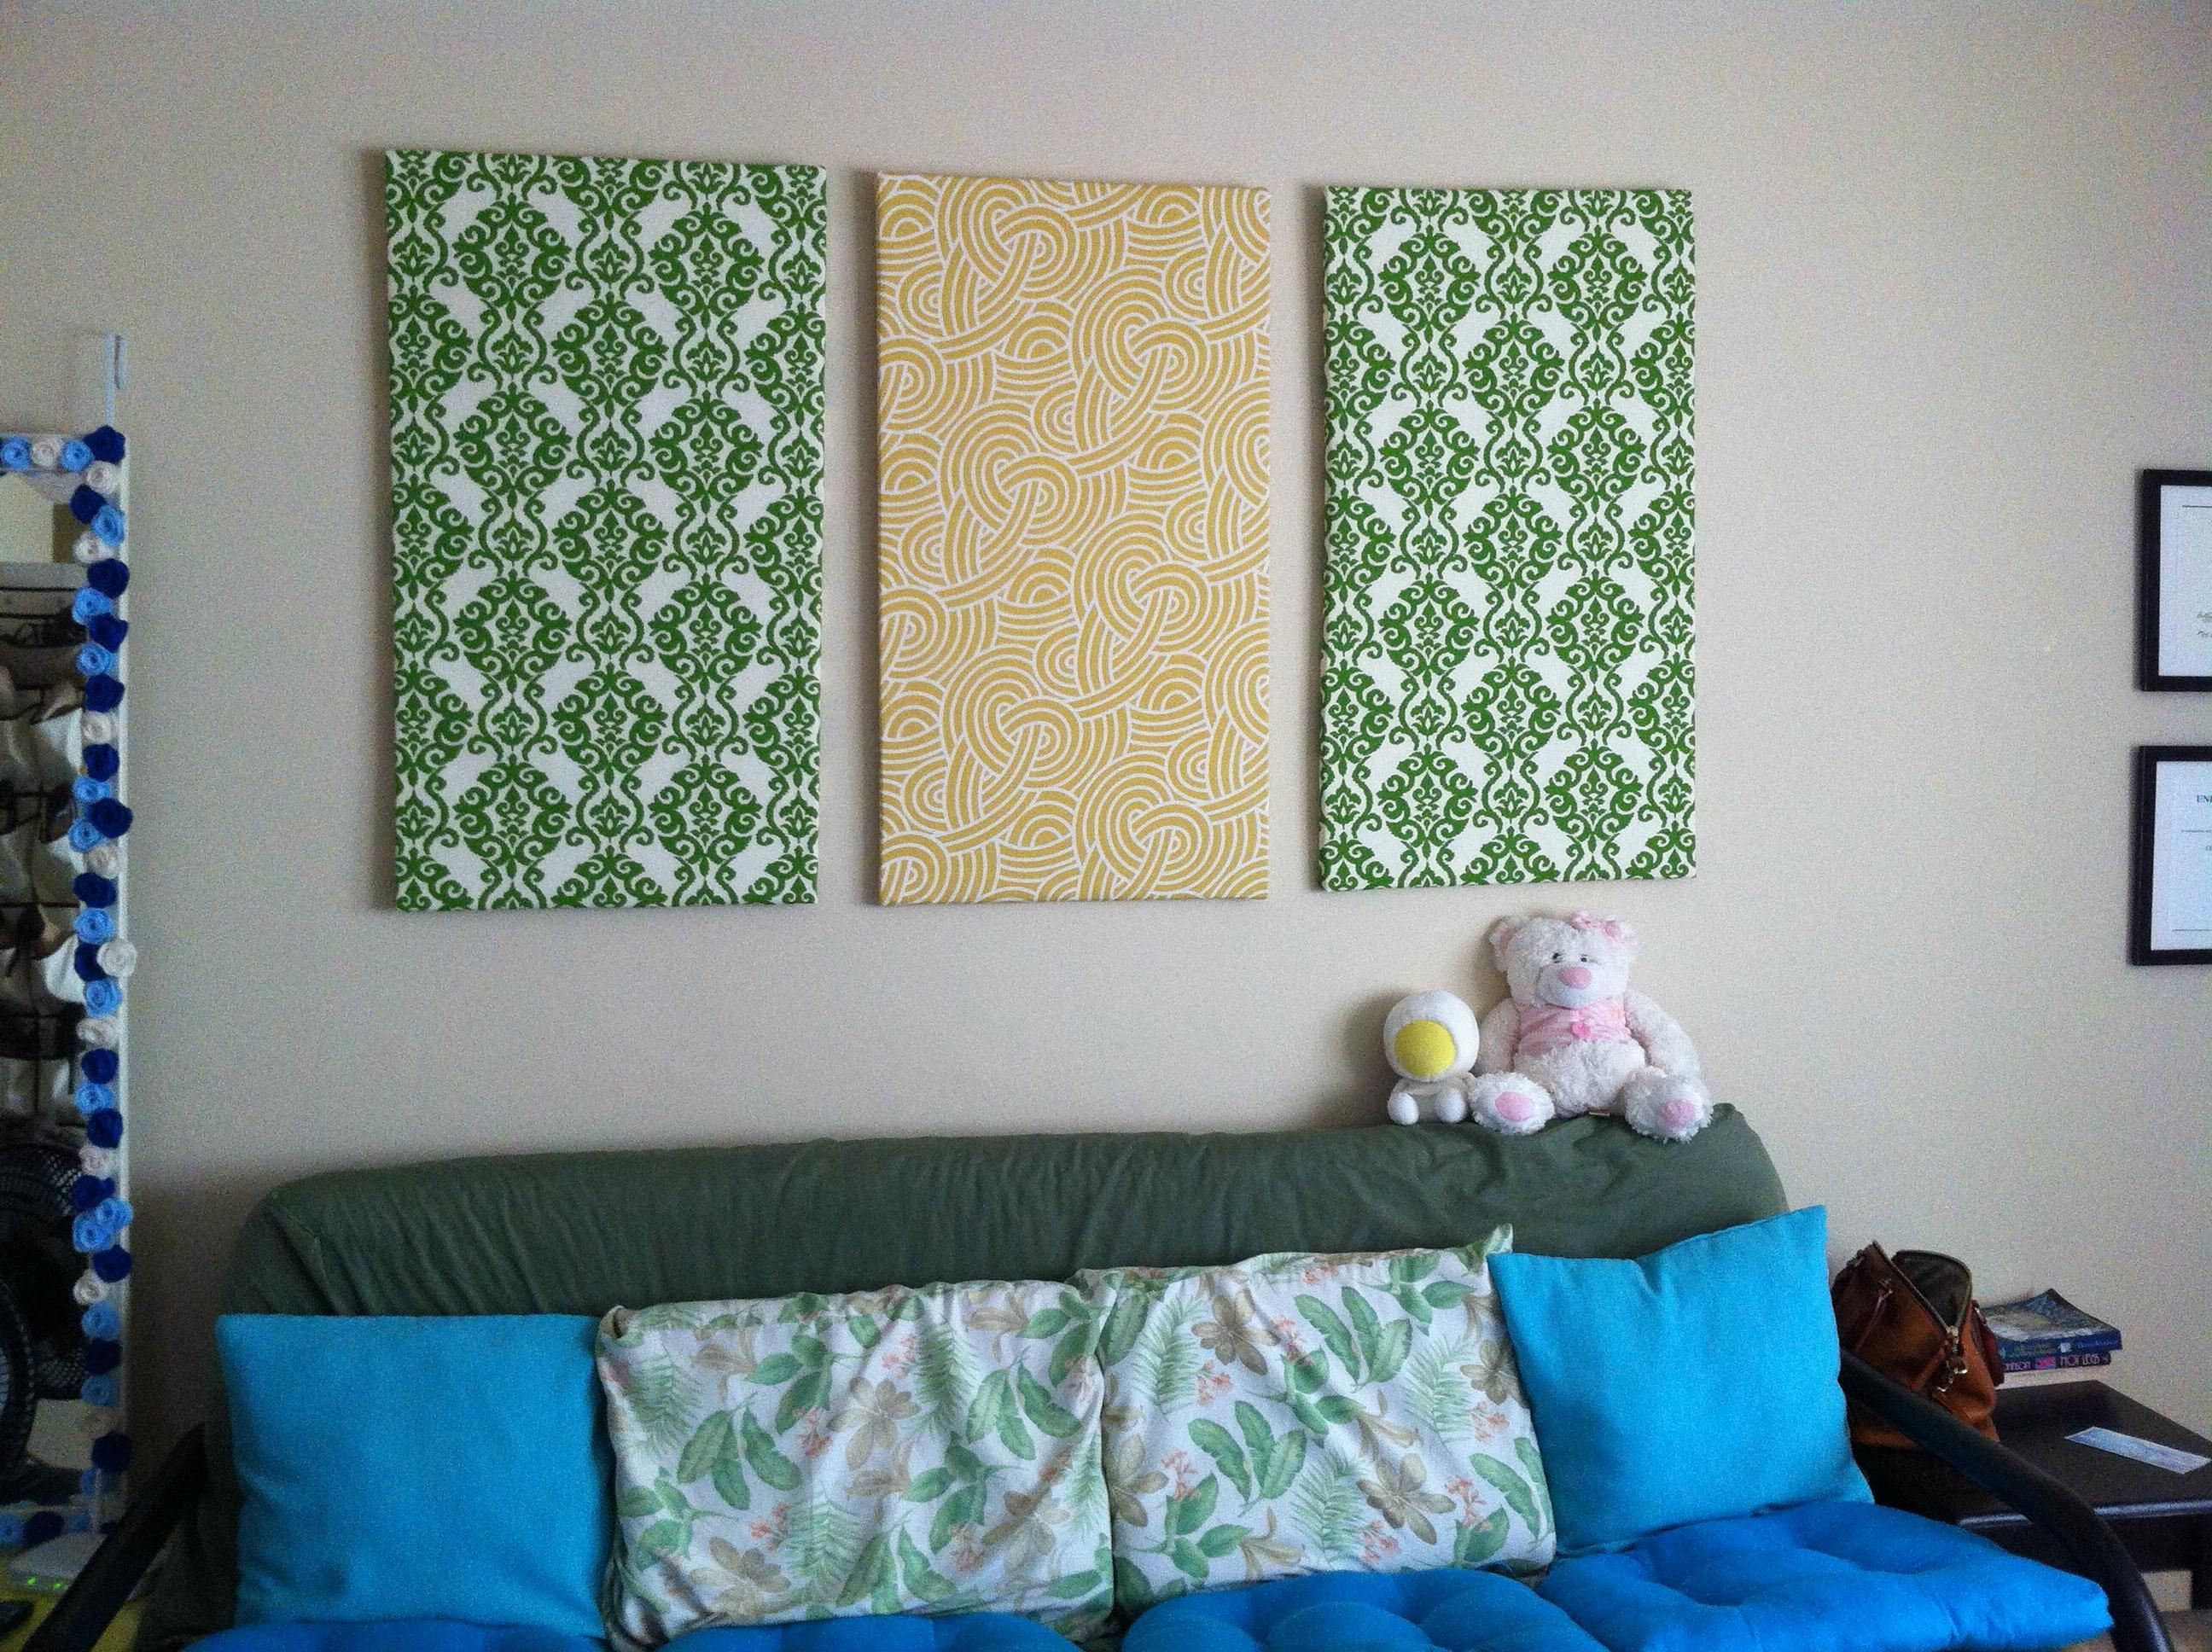 Diy Fabric Wall Art | Crafting Is Sanity Throughout Fabric Wall Art (Image 8 of 20)